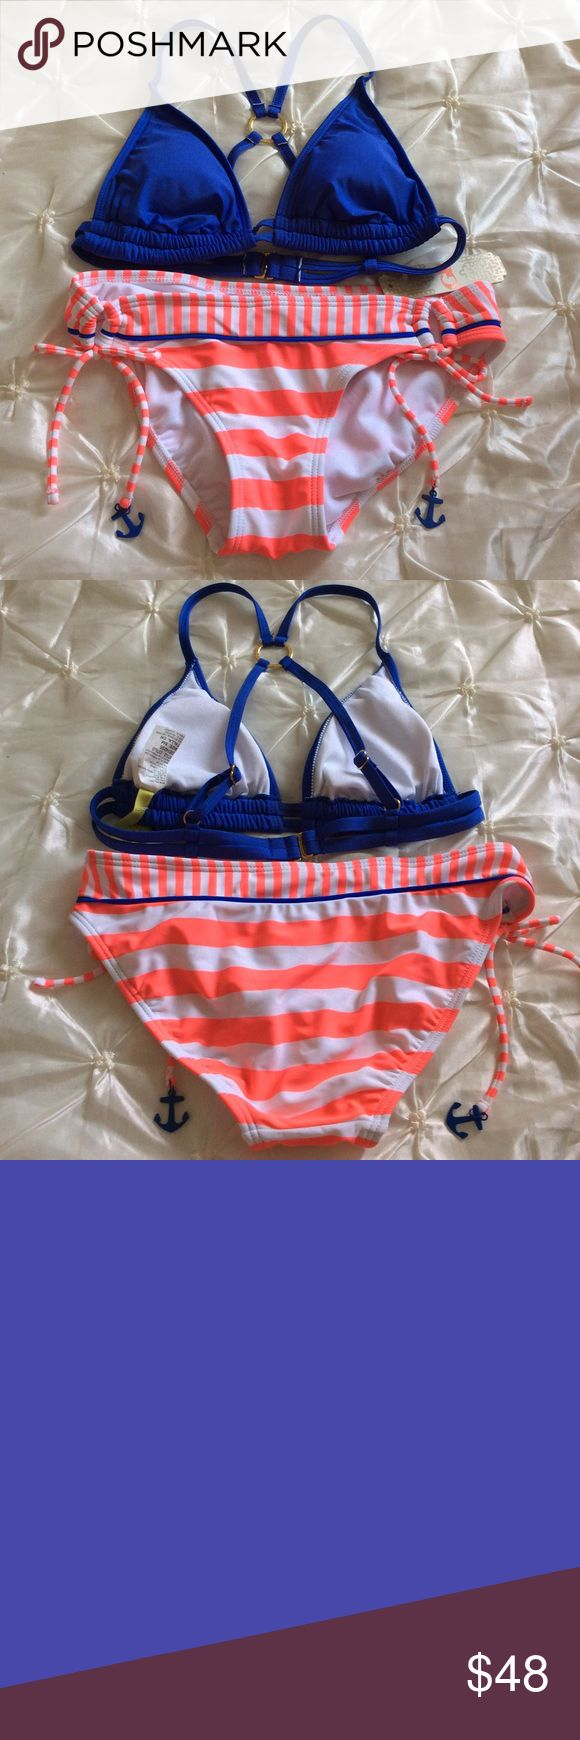 Gianni Bini Hot Pink Sailing Anchor Bikini Hot bright colors for this summer! Cute swimsuit with little anchors. Third and fourth picture are actual colors of the swimsuit.  Top is purplish blue and bottom is hot pink salmon color. 💙👙💙 Gianni Bini Swim Bikinis